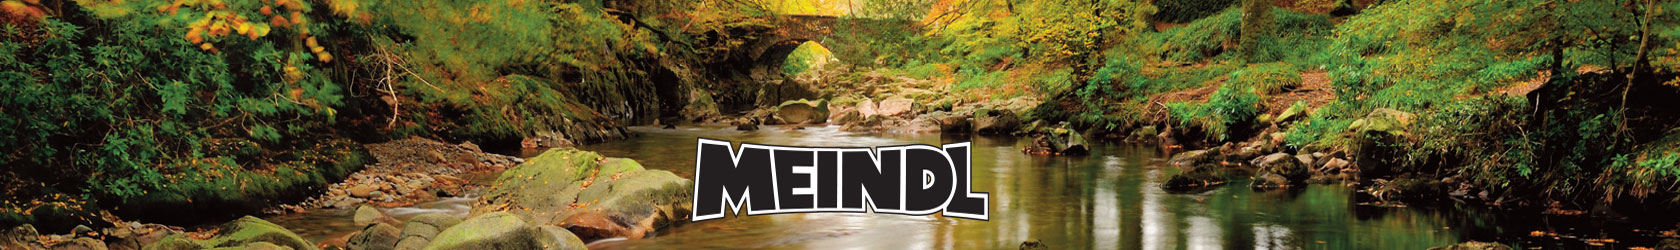 A view of the water with some rocks in the wood with Meindl brand logo in the middle.